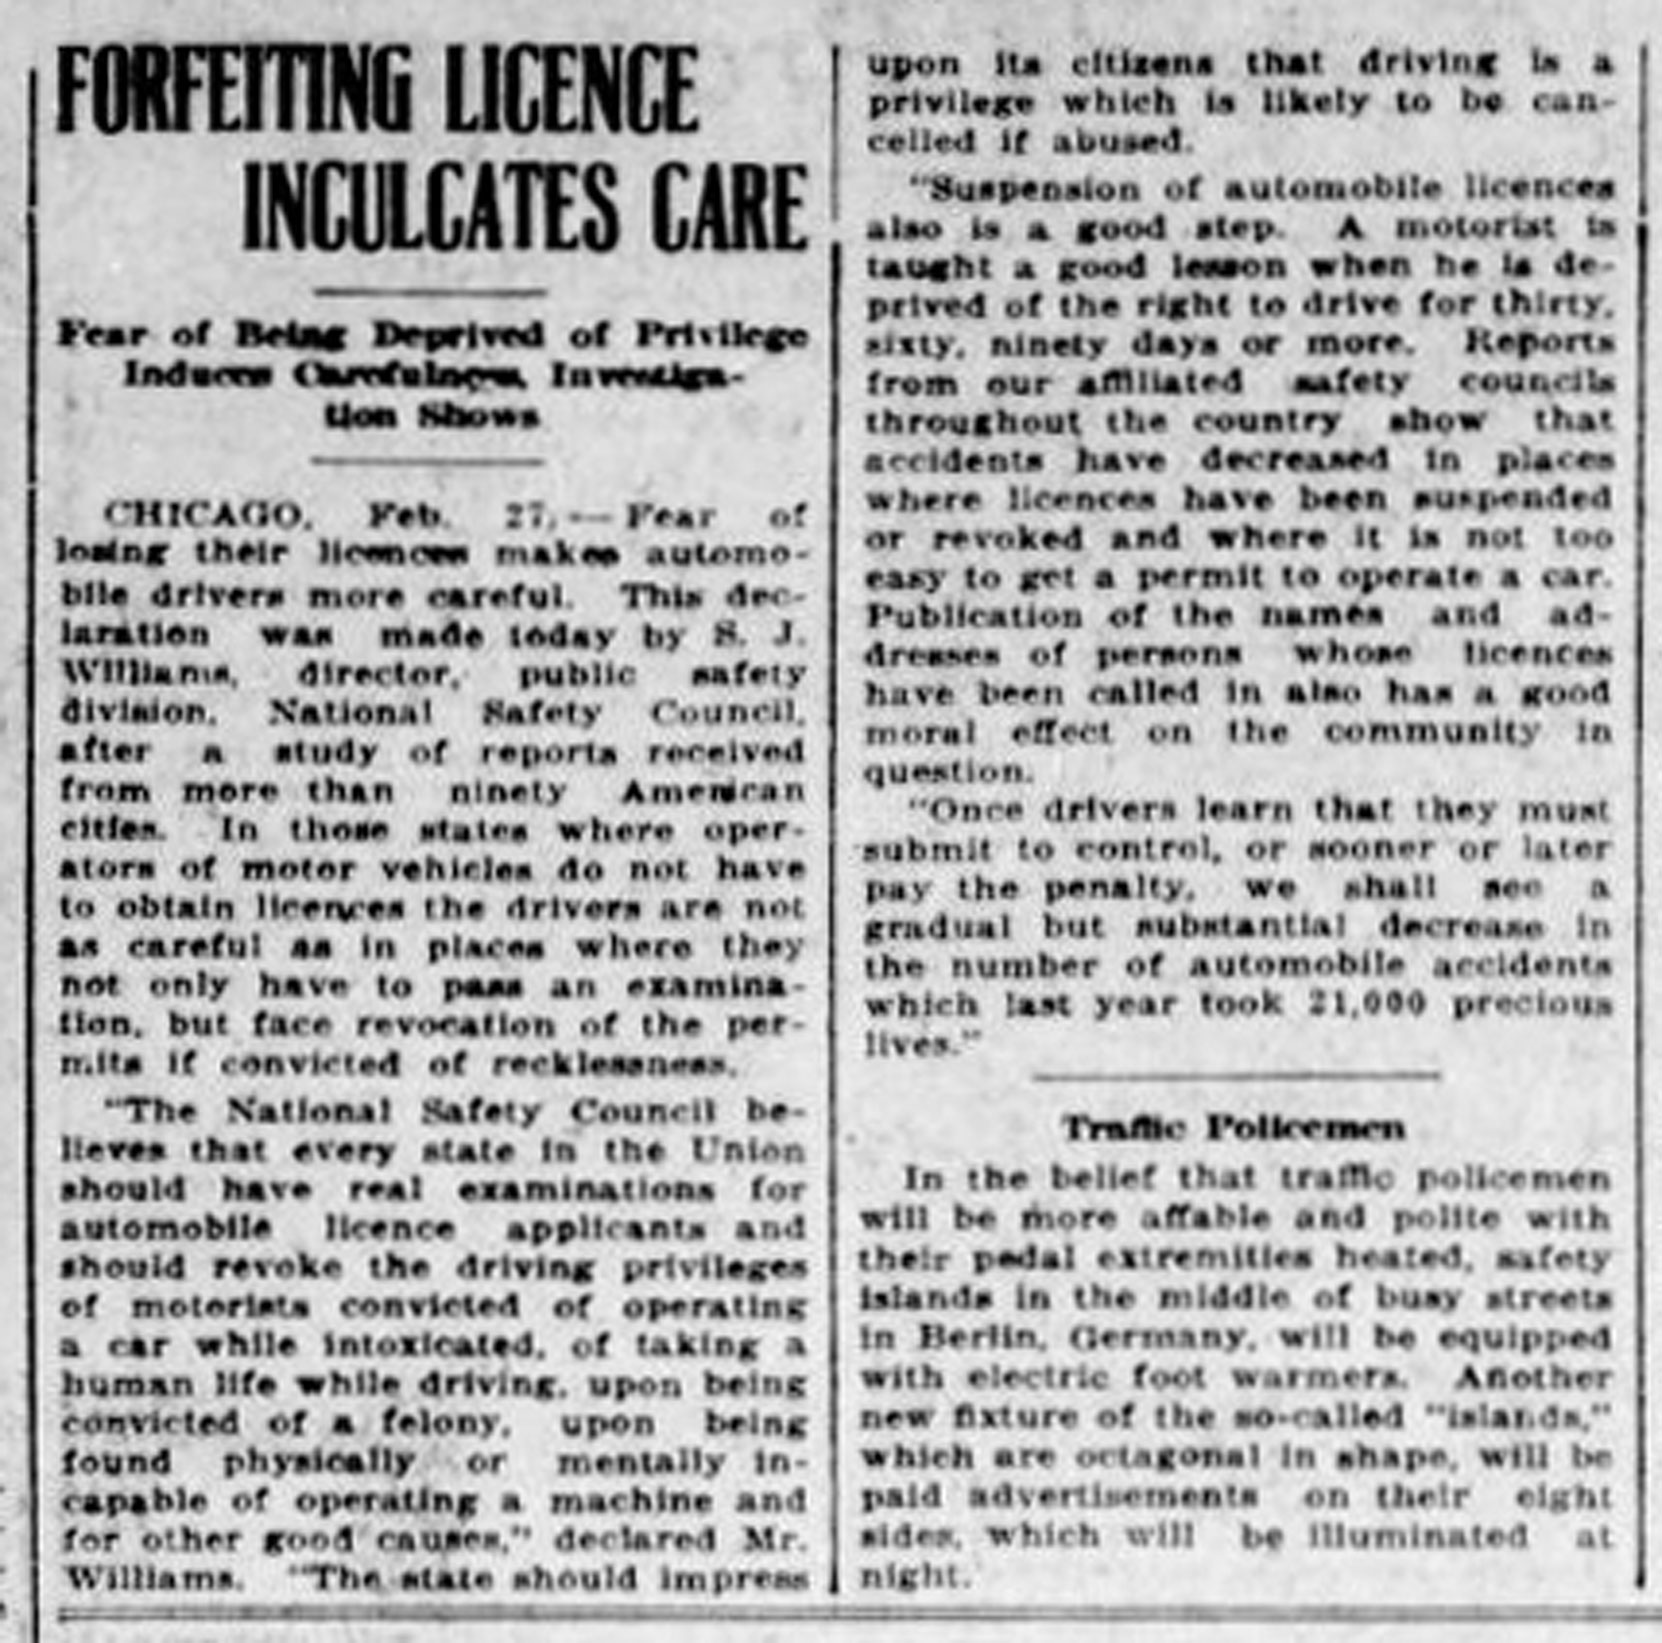 1926 article in the Daily Colonist about Driver License Suspensions